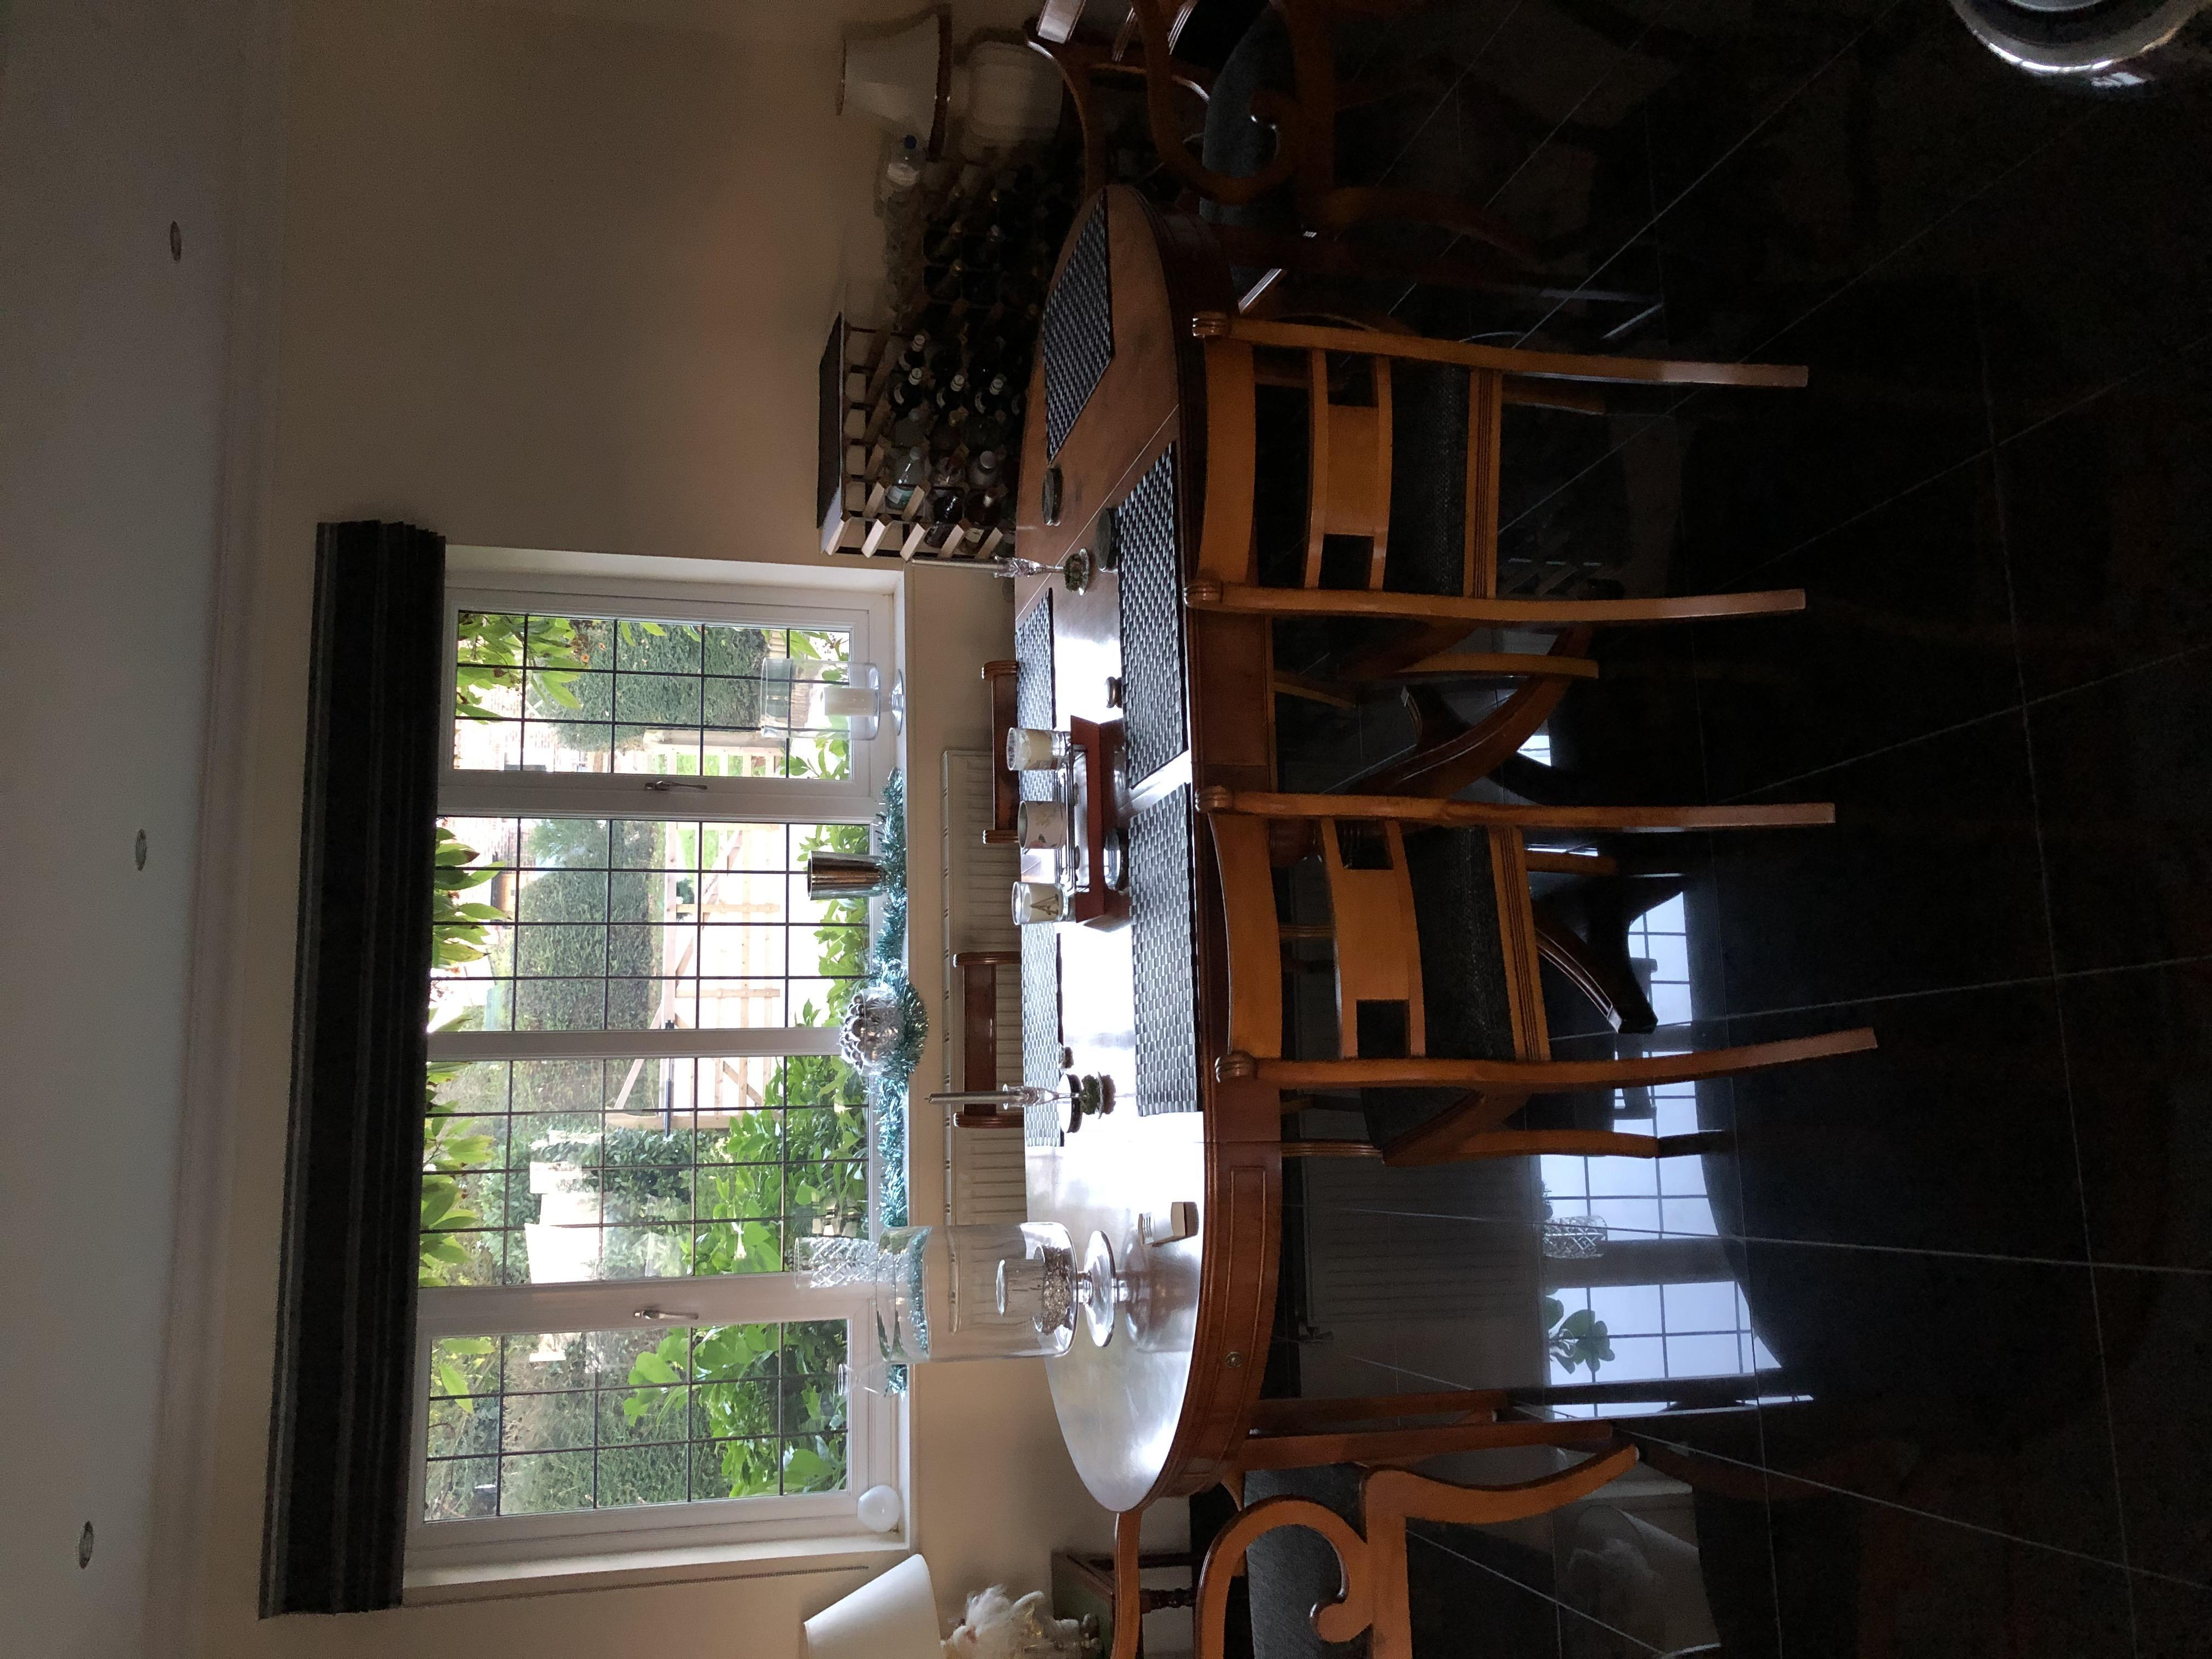 Bevan Funnel Antique Style Table and Chairs